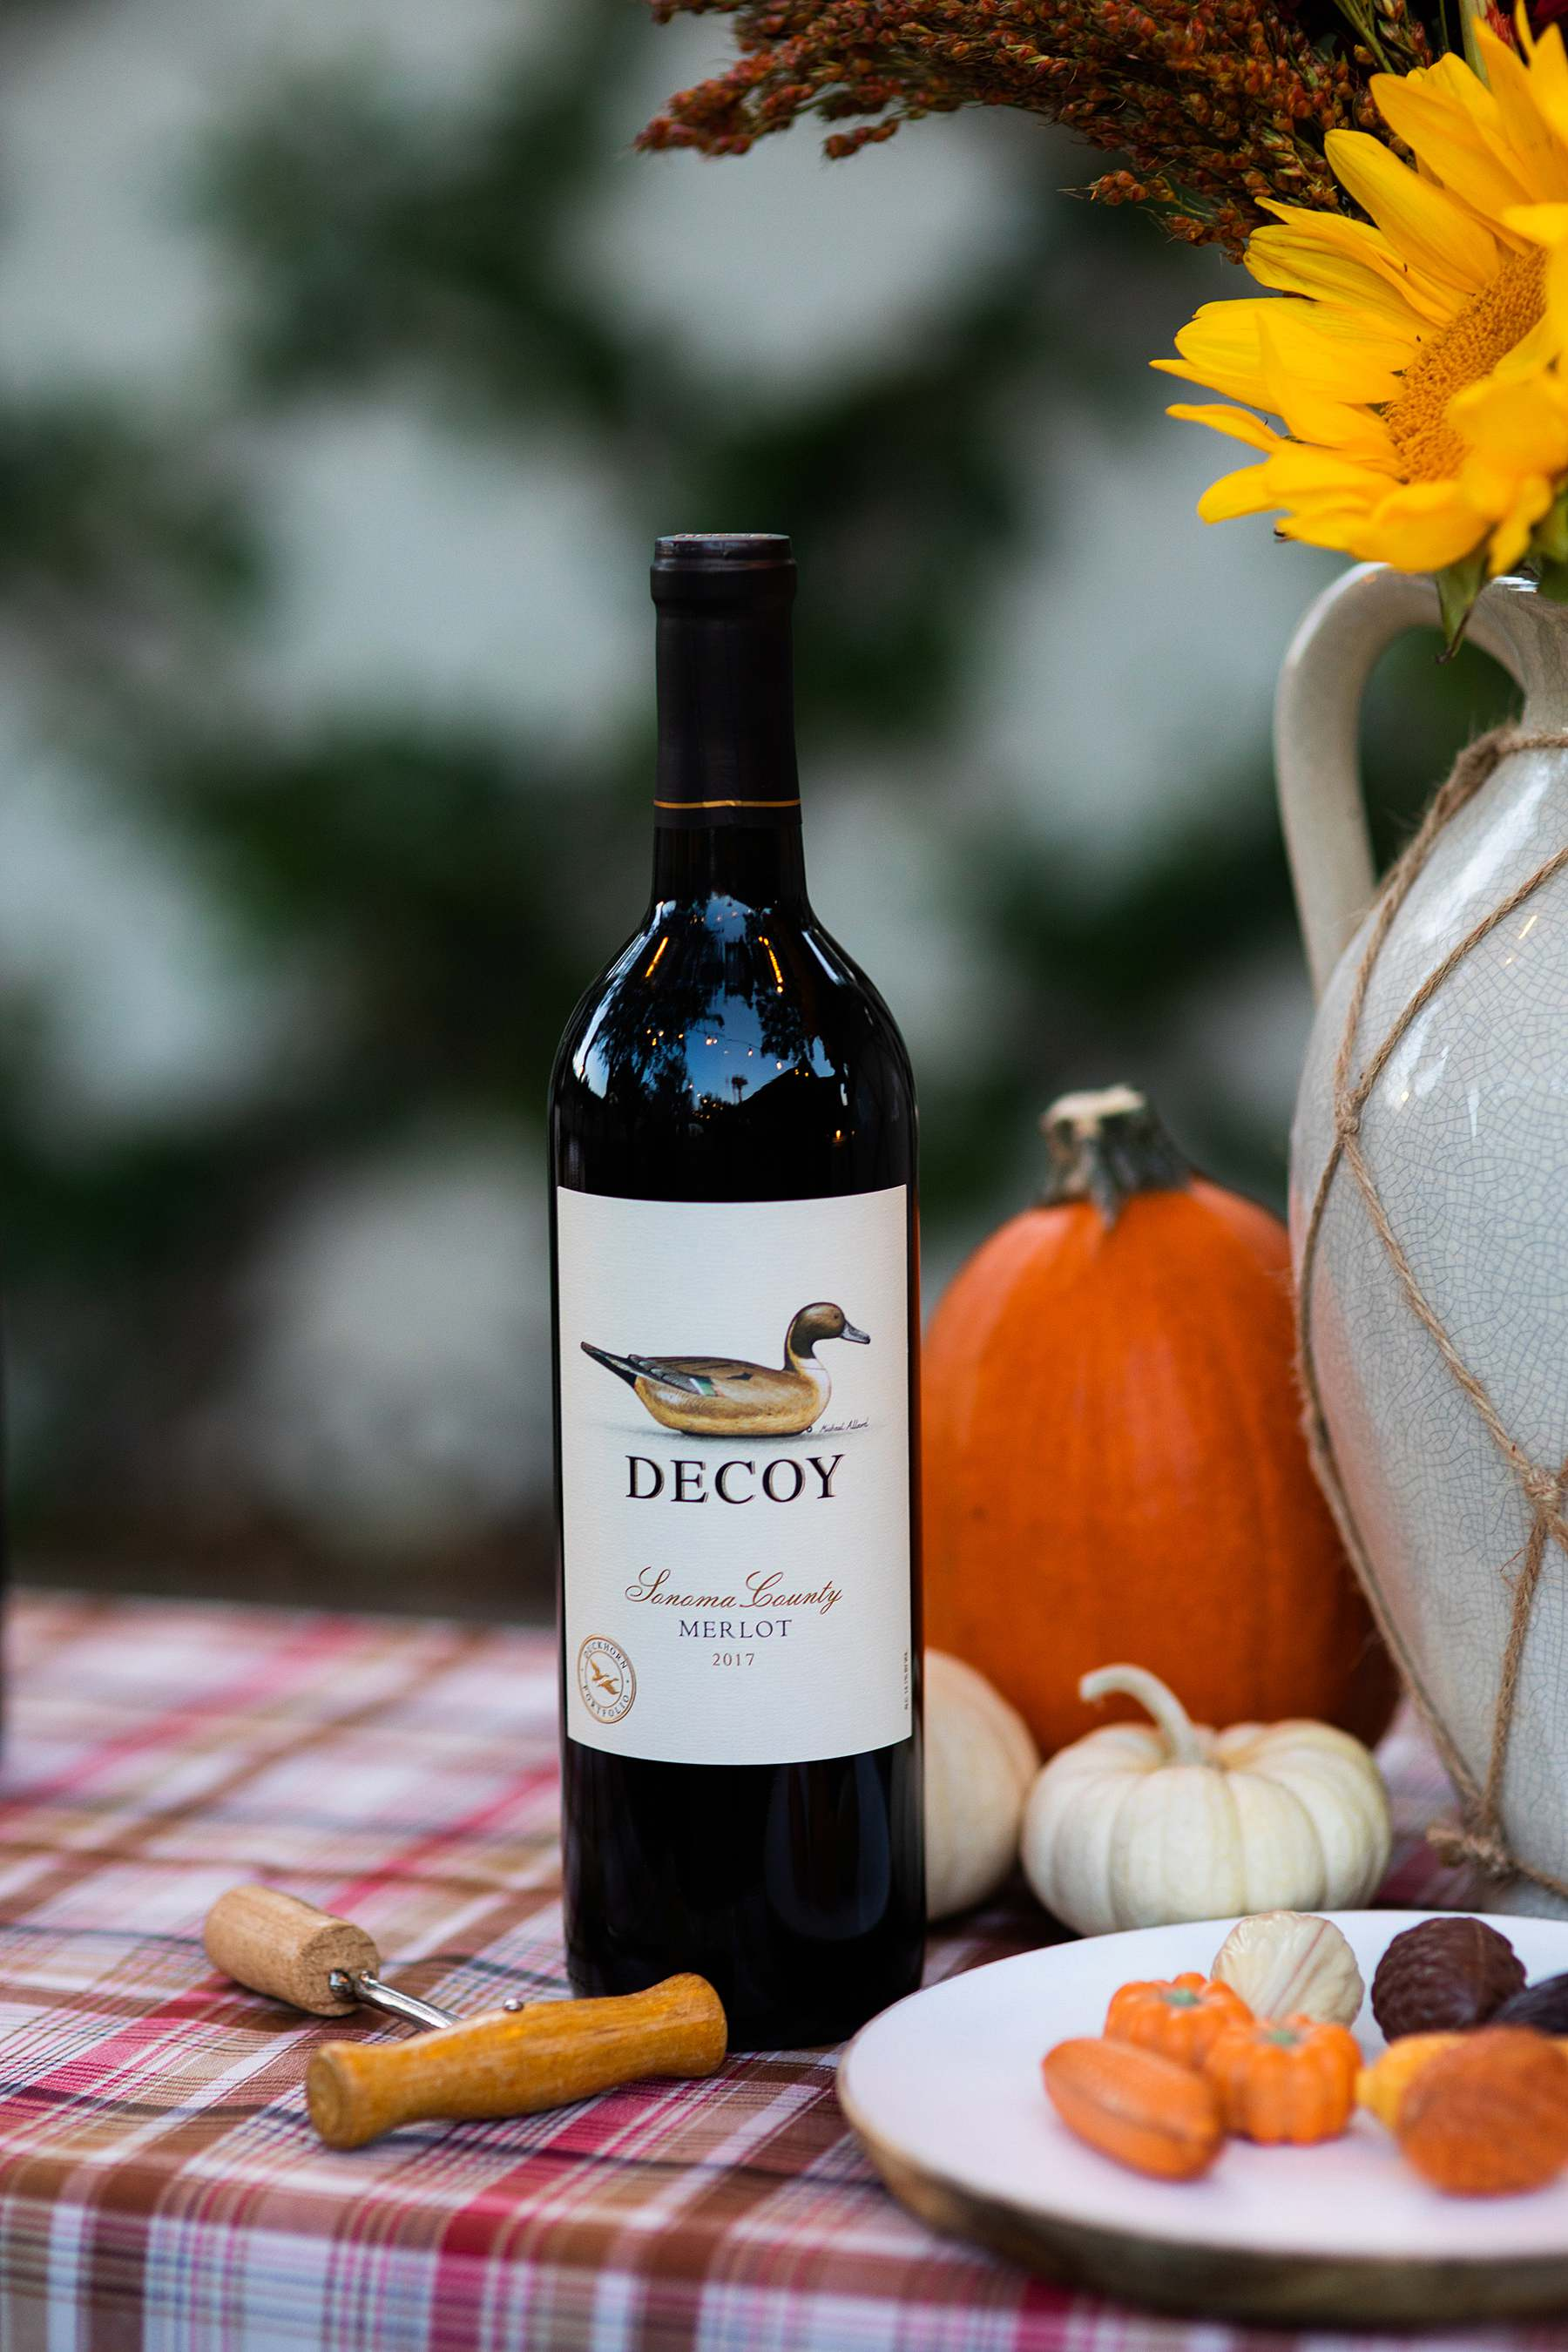 decoy wine on table Friendsgiving idea outdoor tablescape party